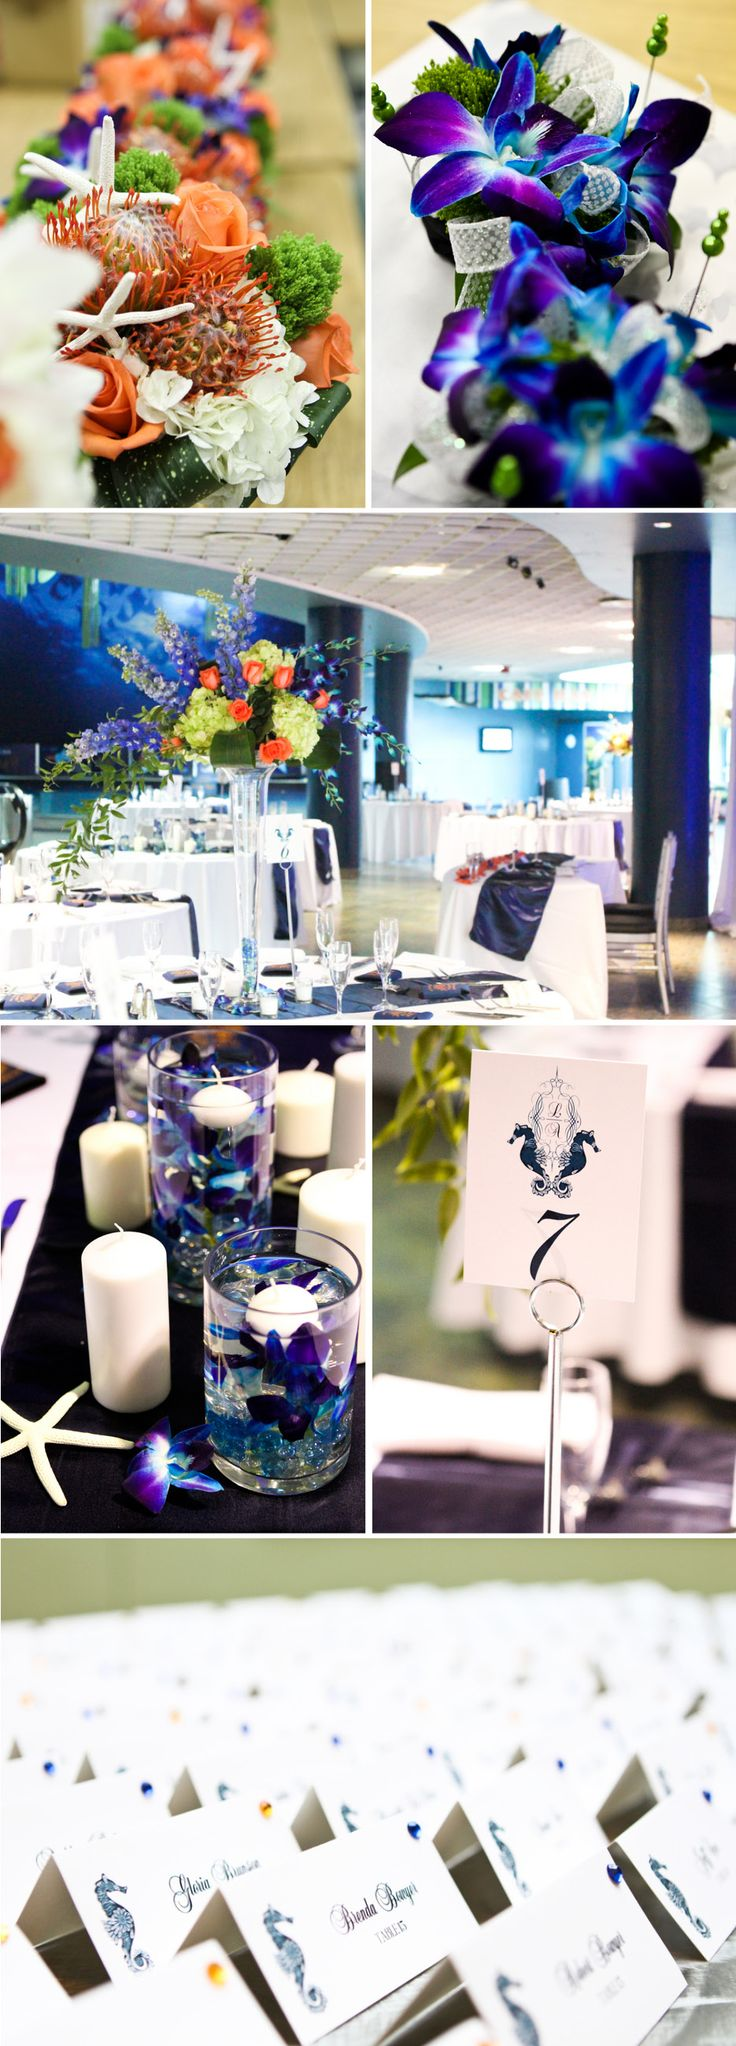 Tampa Wedding at Florida Aquarium by Horn Photography and Design - The Celebration Society